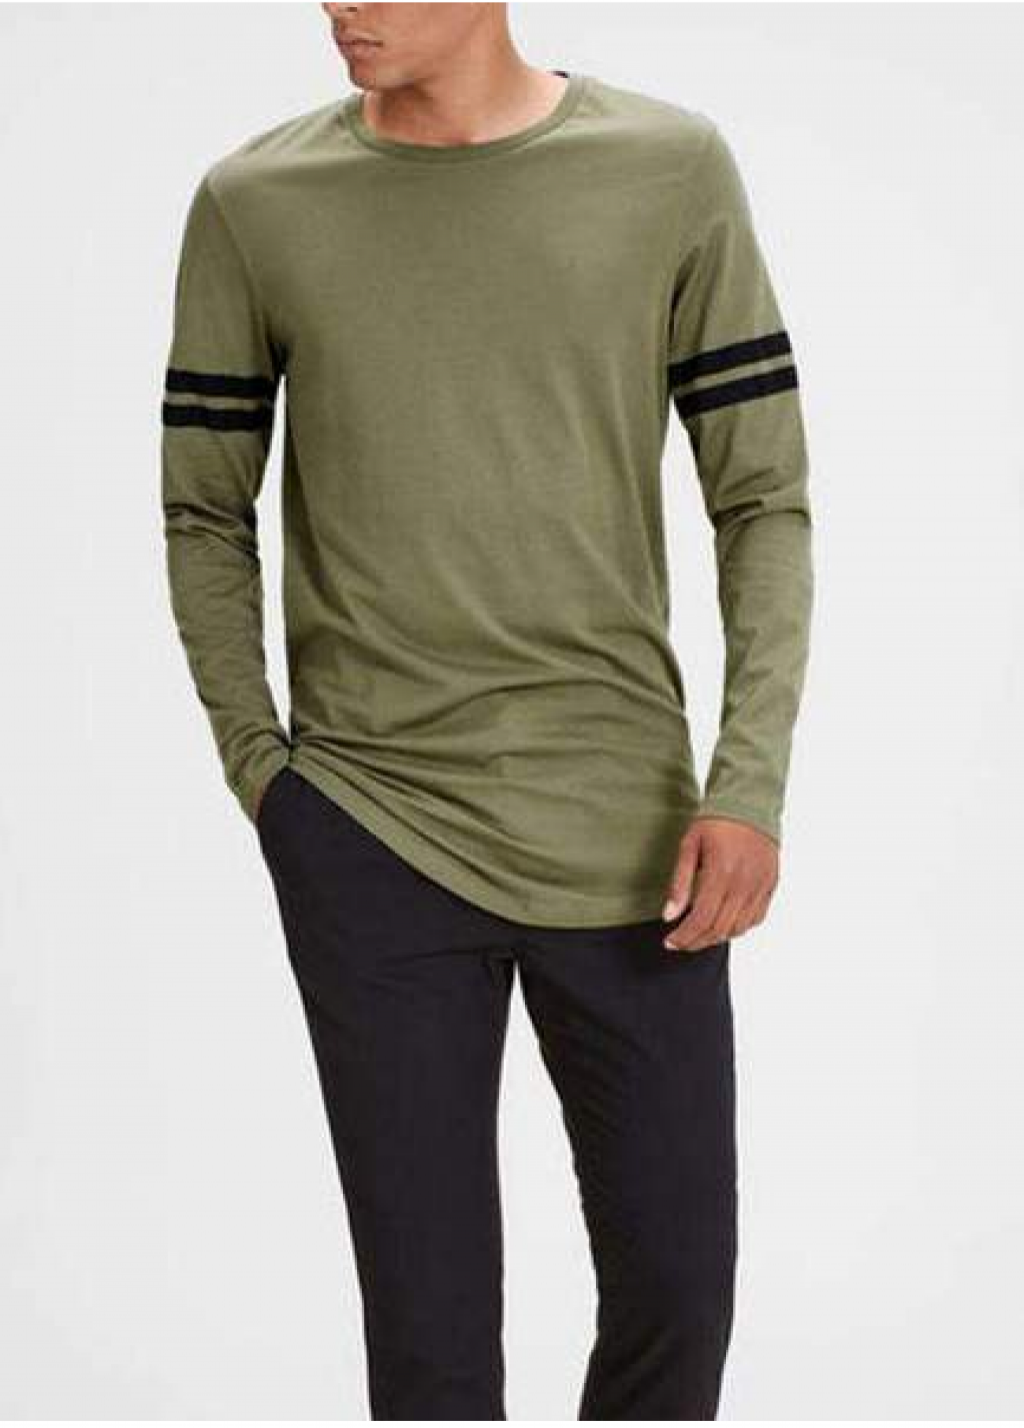 c05484a58d92 Long Sleeves For Men - Sammy Dress for Less: Cheap Clothes .